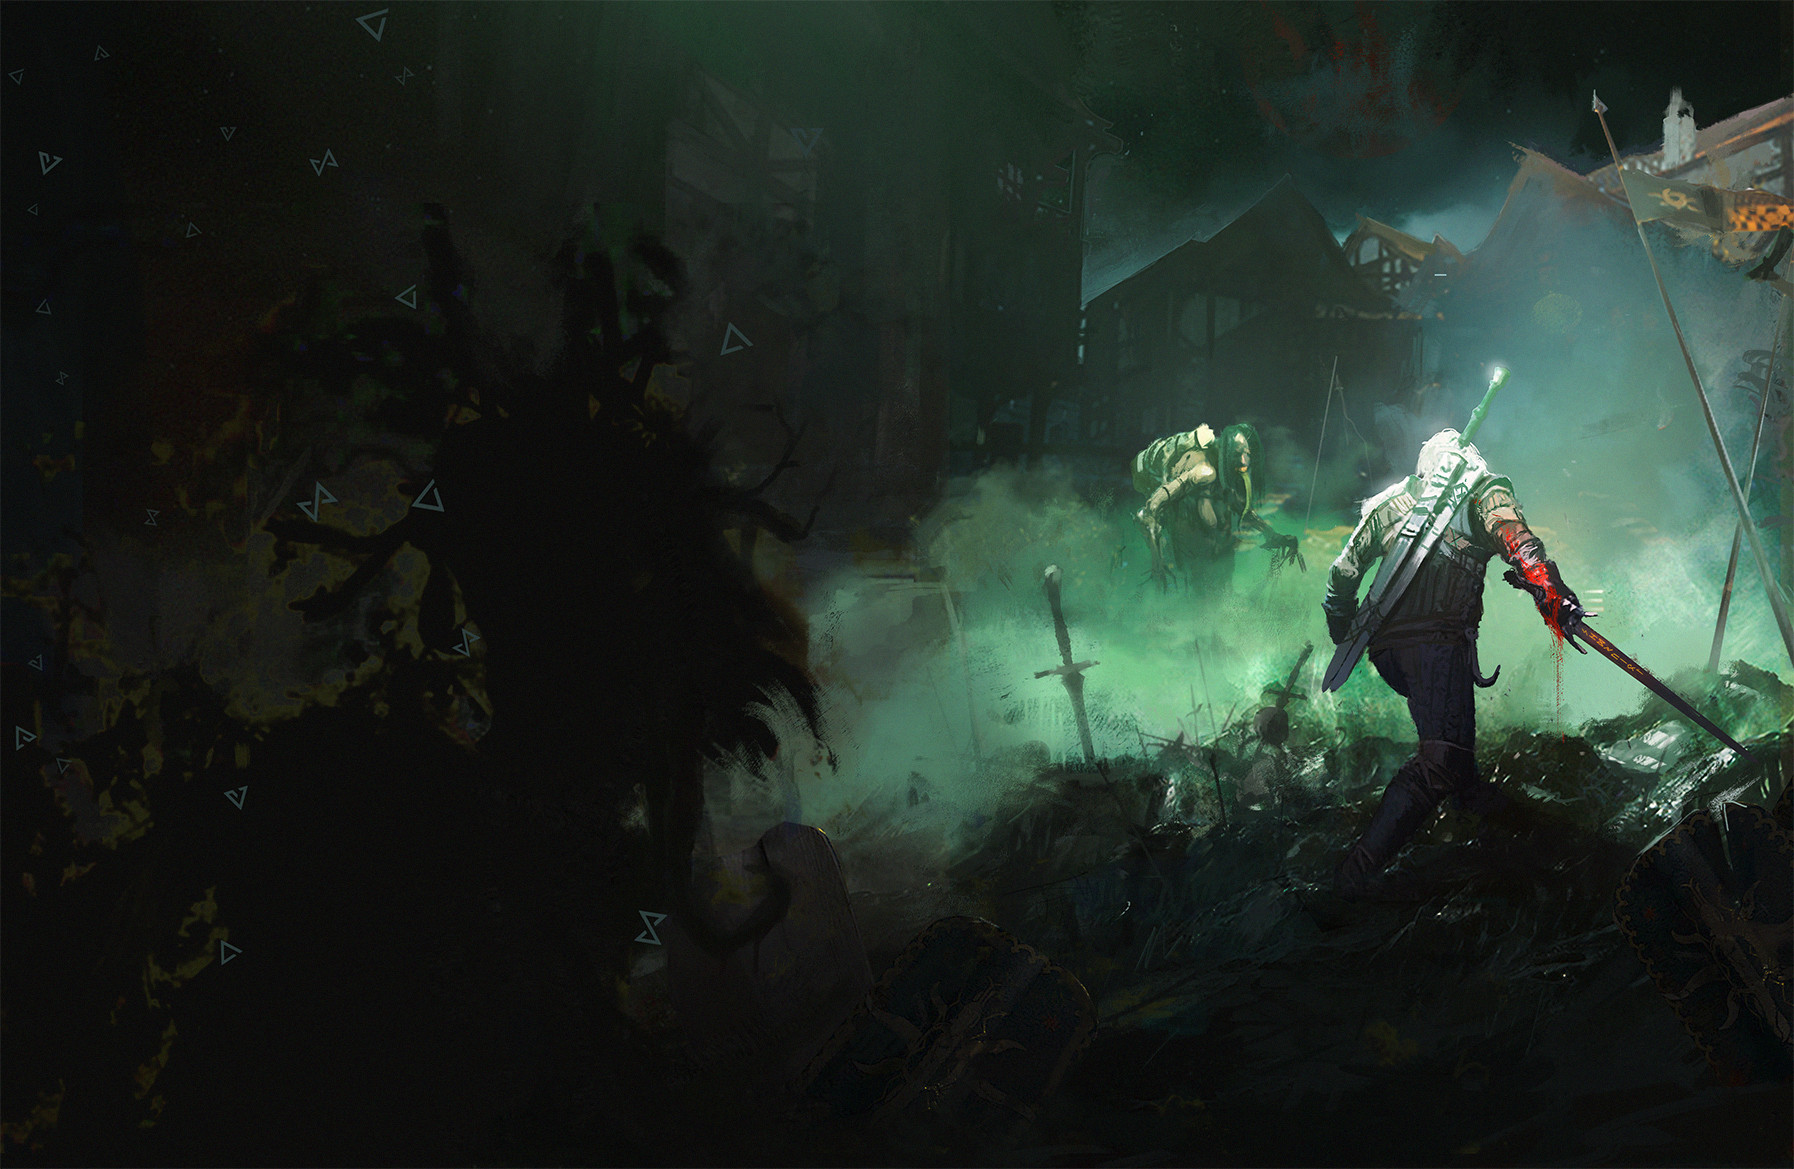 Ismail inceoglu the witcher the art 4th book cover fanart